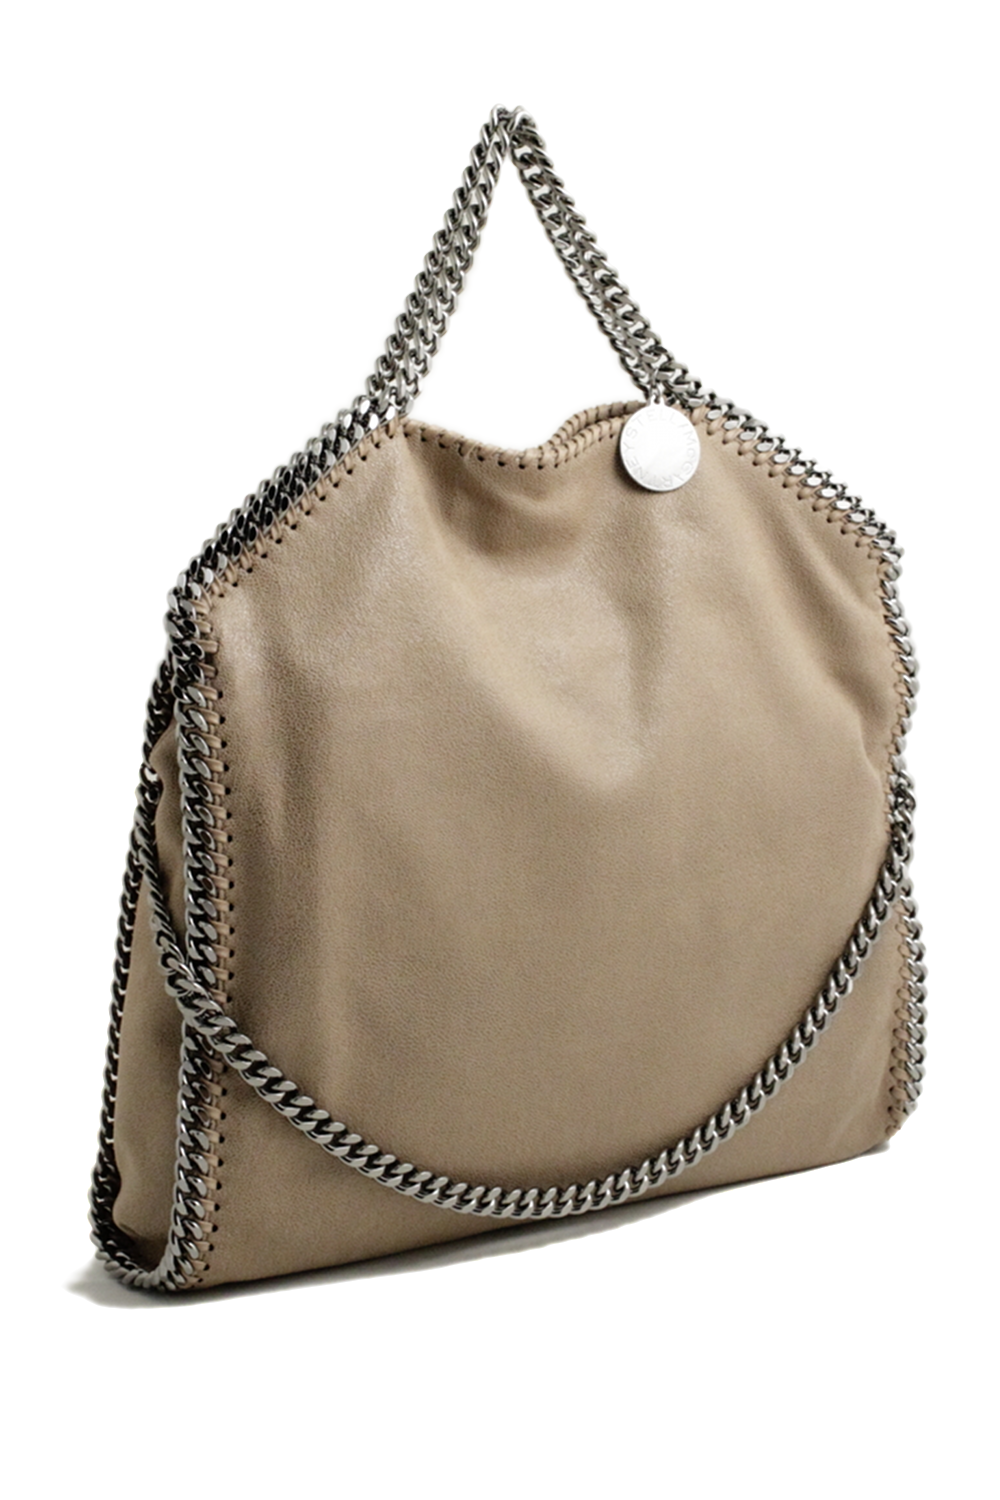 b27a0021e378 Stella McCartney falabella three chain beage toffee tote bag Stella  McCartney shop online